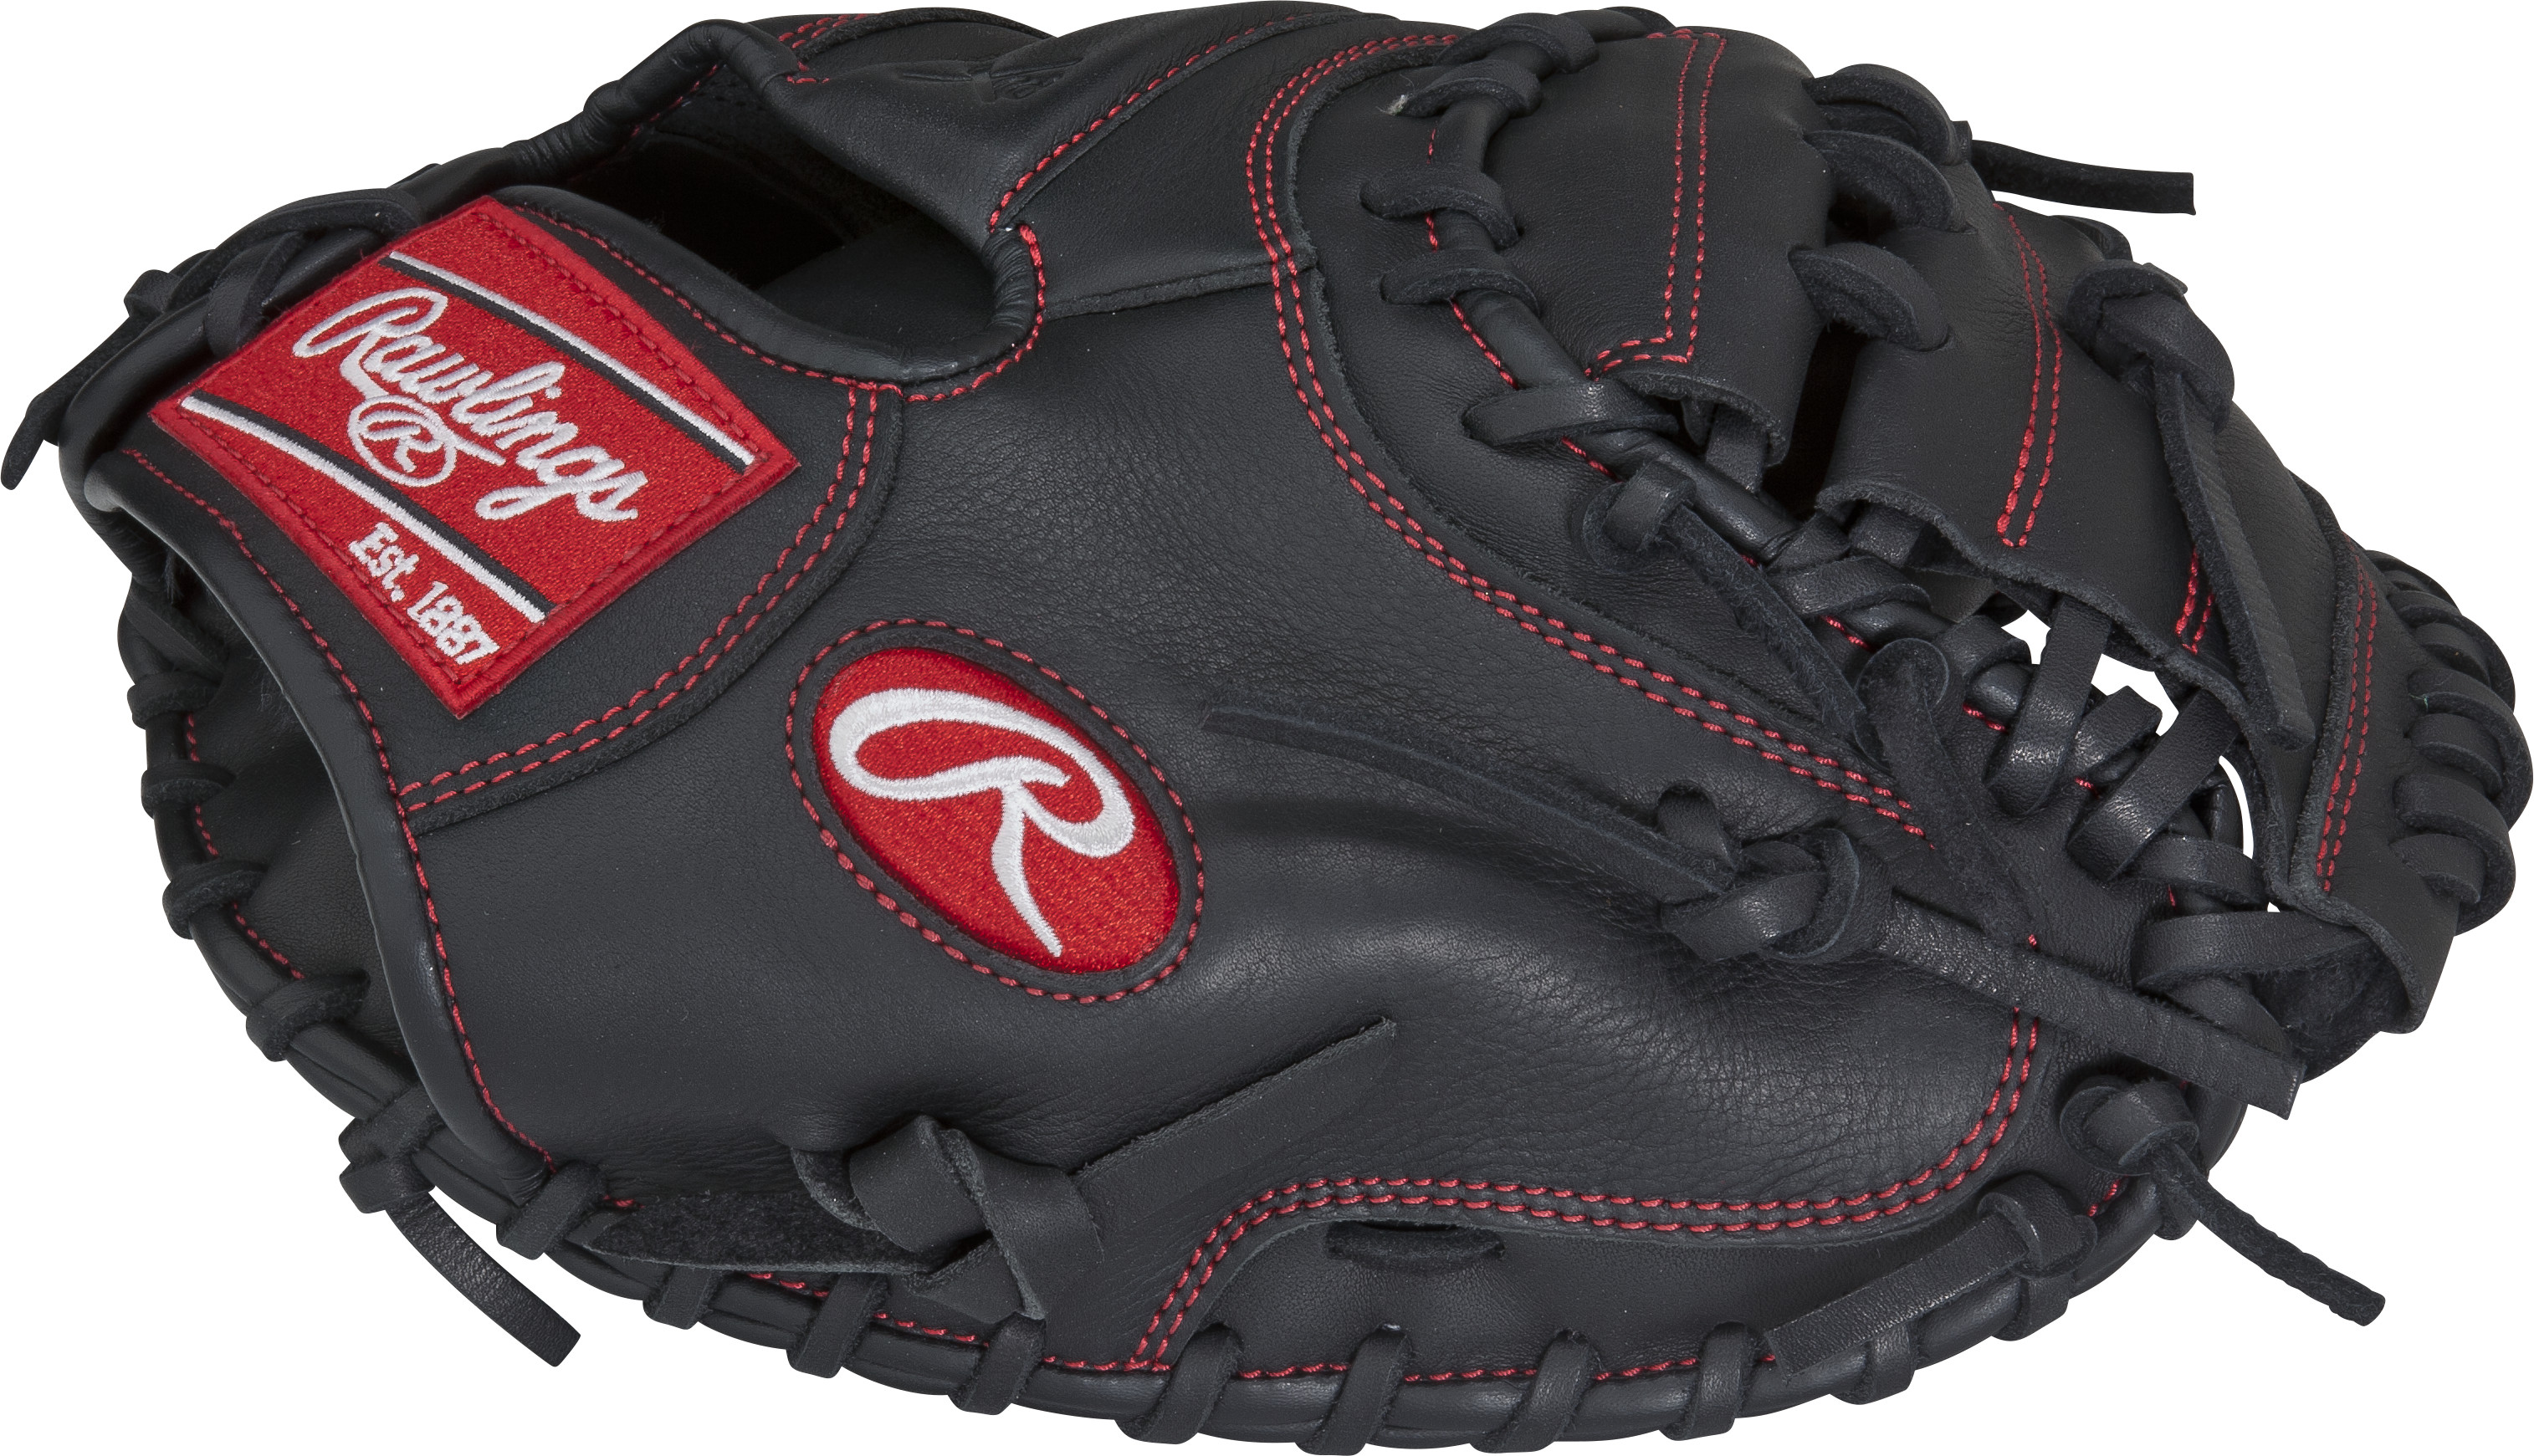 Rawlings Gamer Youth Pro Taper Series Baseball Glove by Rawlings